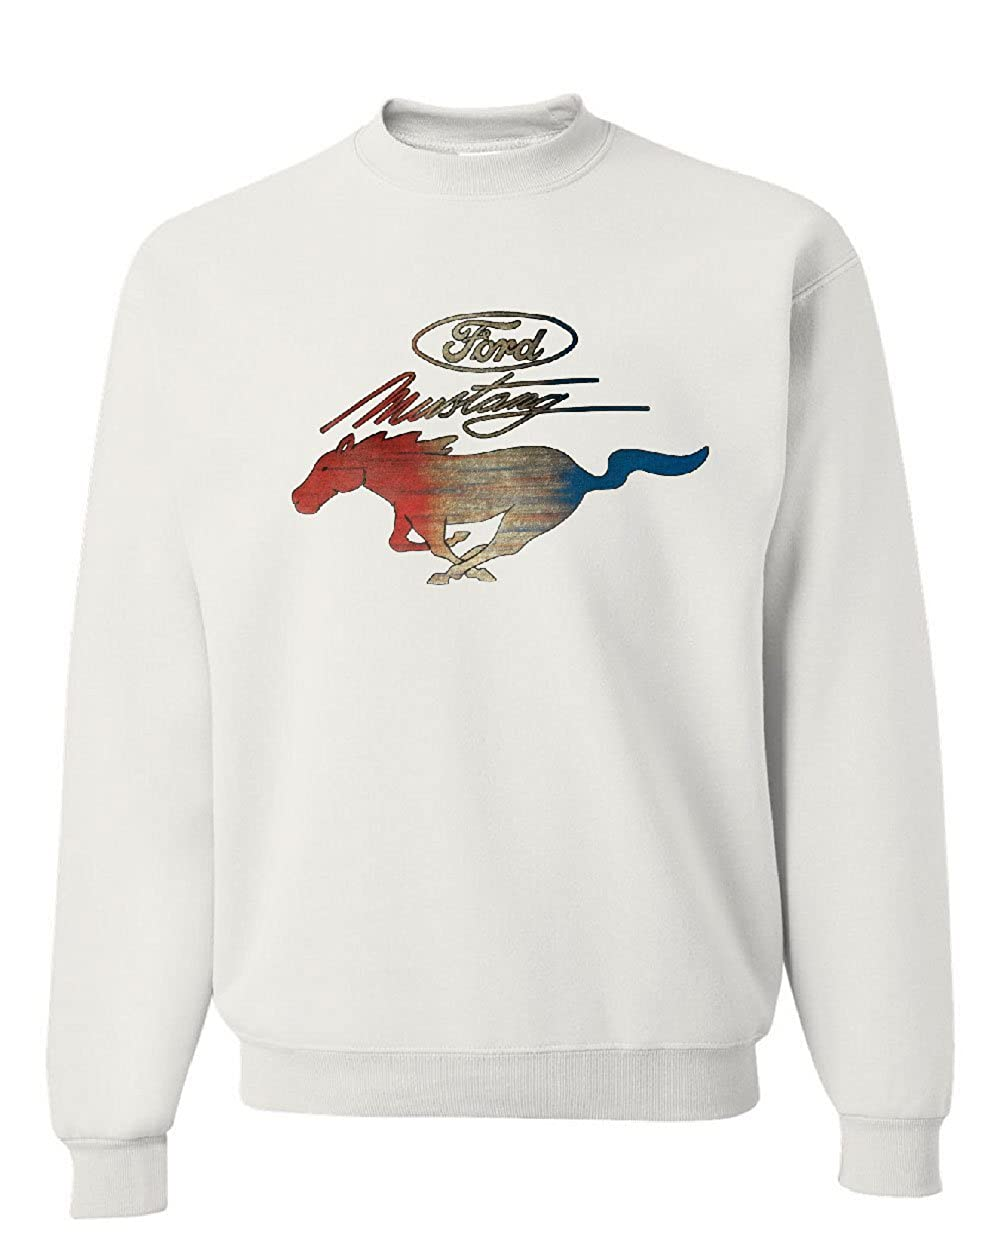 Ford Mustang Logo Sweatshirt GT Shelby Cobra Boss 302 Sweater